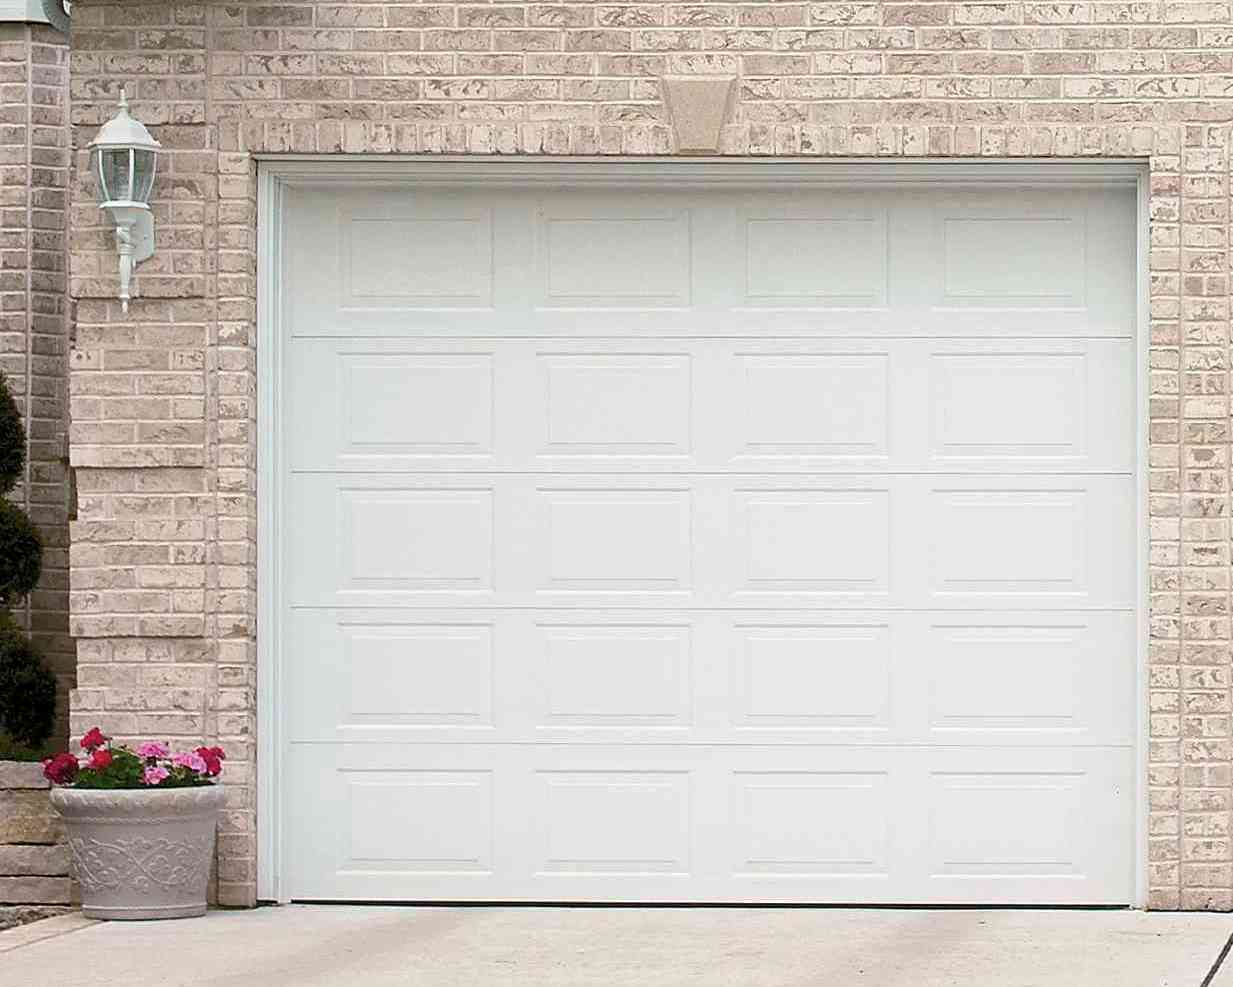 987 #963569 Garage Door Frames Minnesota Bayer Built Woodworks picture/photo Garages Doors 36391233